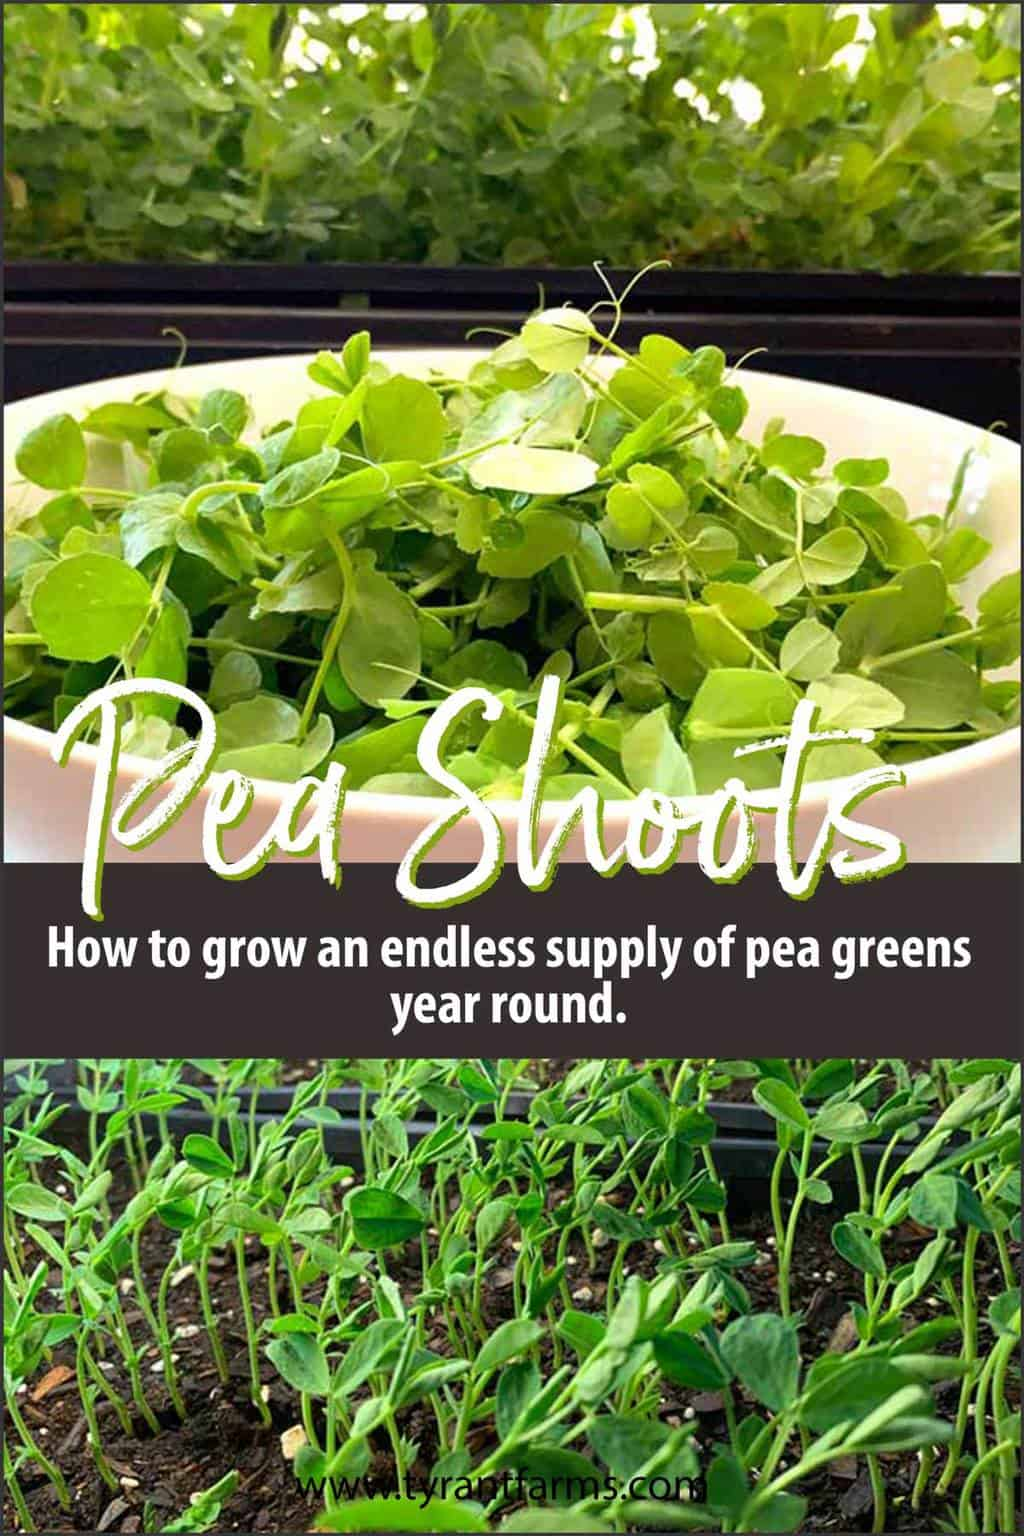 How to grow an endless supply of pea greens year round.